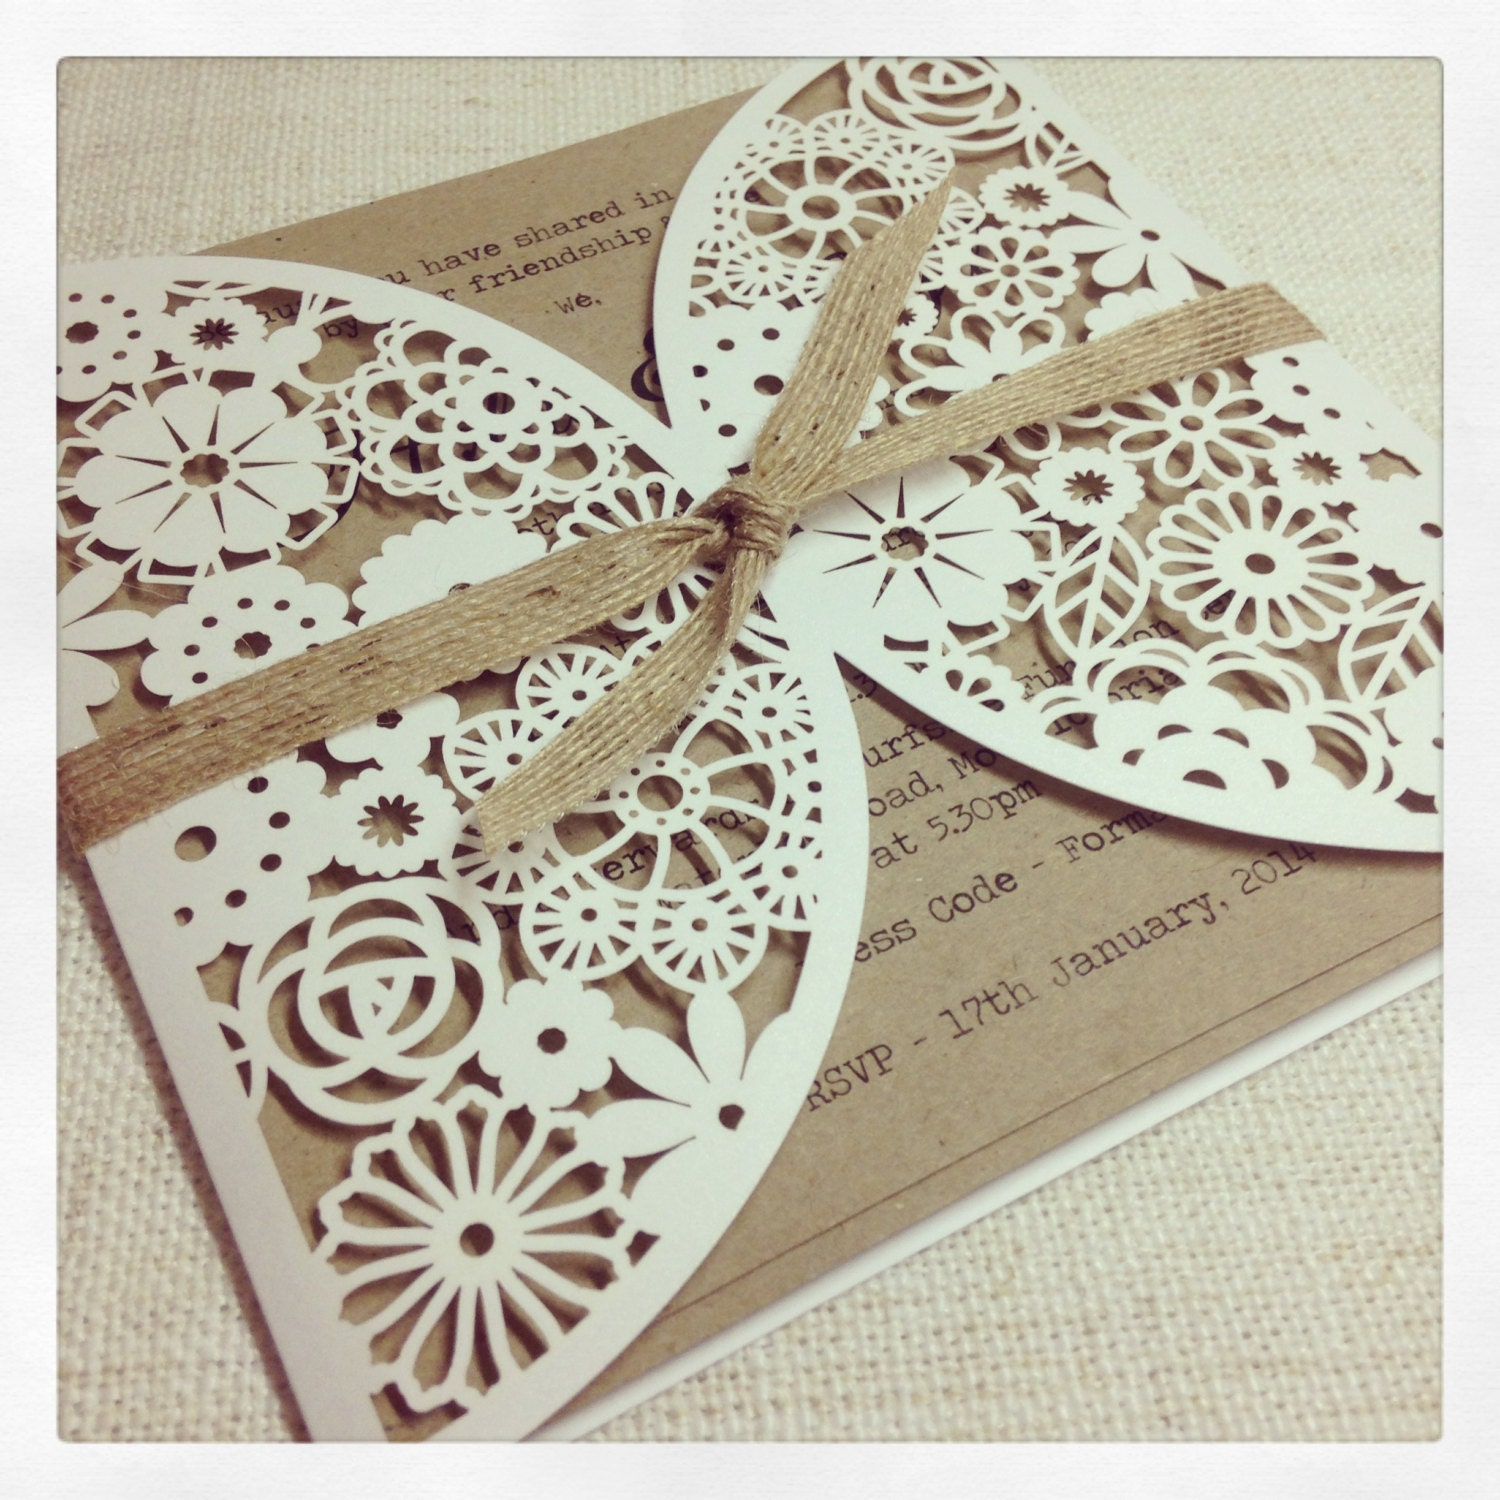 Wedding Invitations With Lace: Rustic Floral Paper Lace Wedding Invitation By